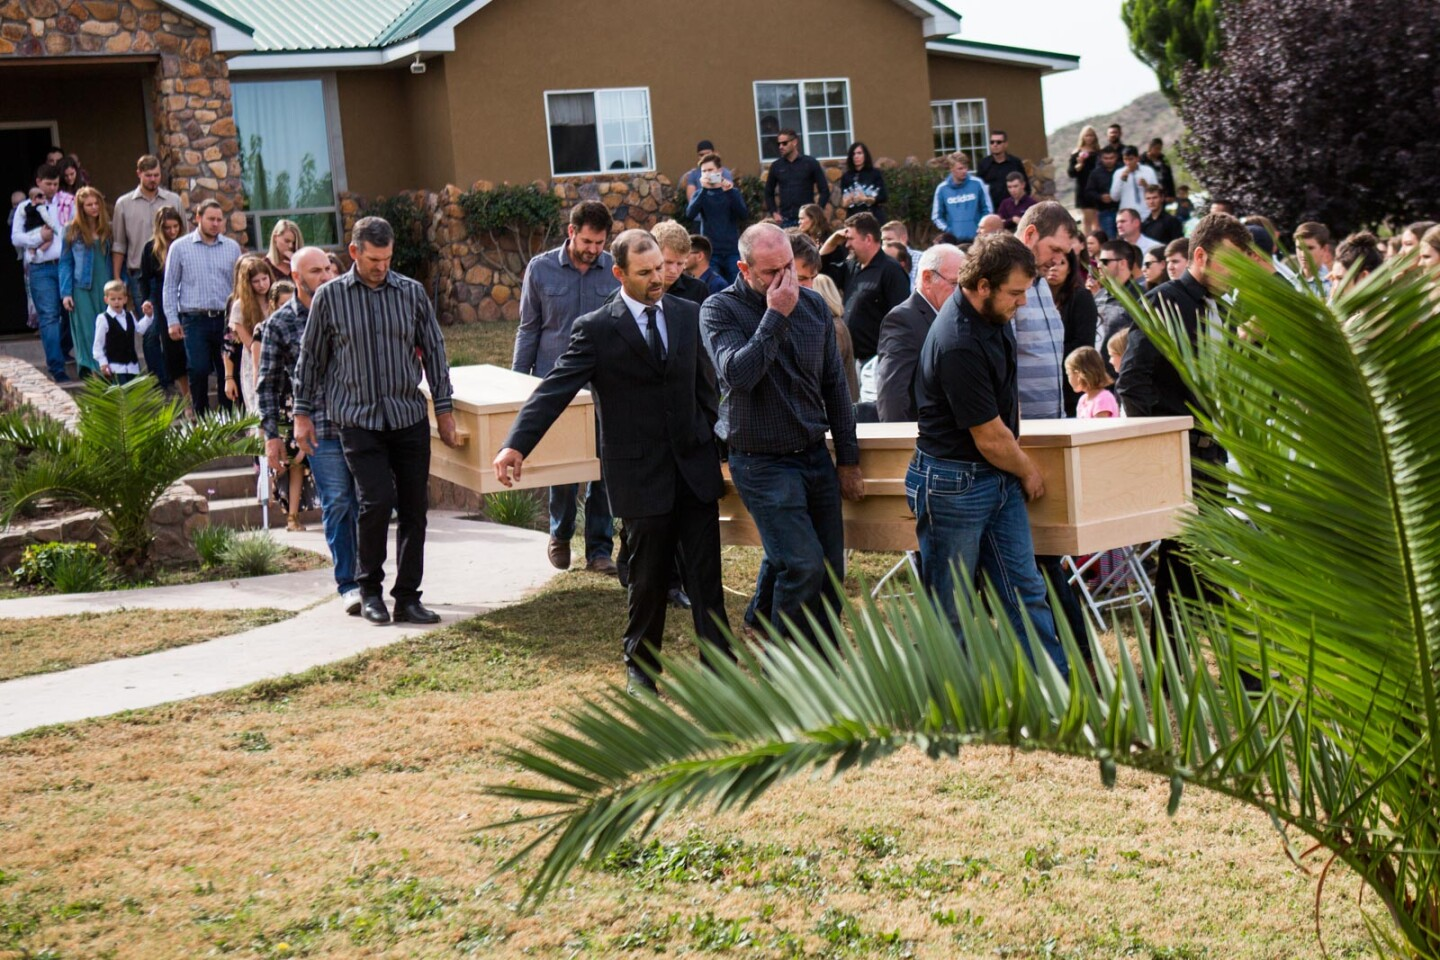 The coffins of Dawna Langford and two of her sons, Trevor and Rogan, are carried out for their funeral Thursday in La Mora, Mexico, Thursday, Nov. 7, 2019. The three were among the nine Mormons killed in Monday's attack.